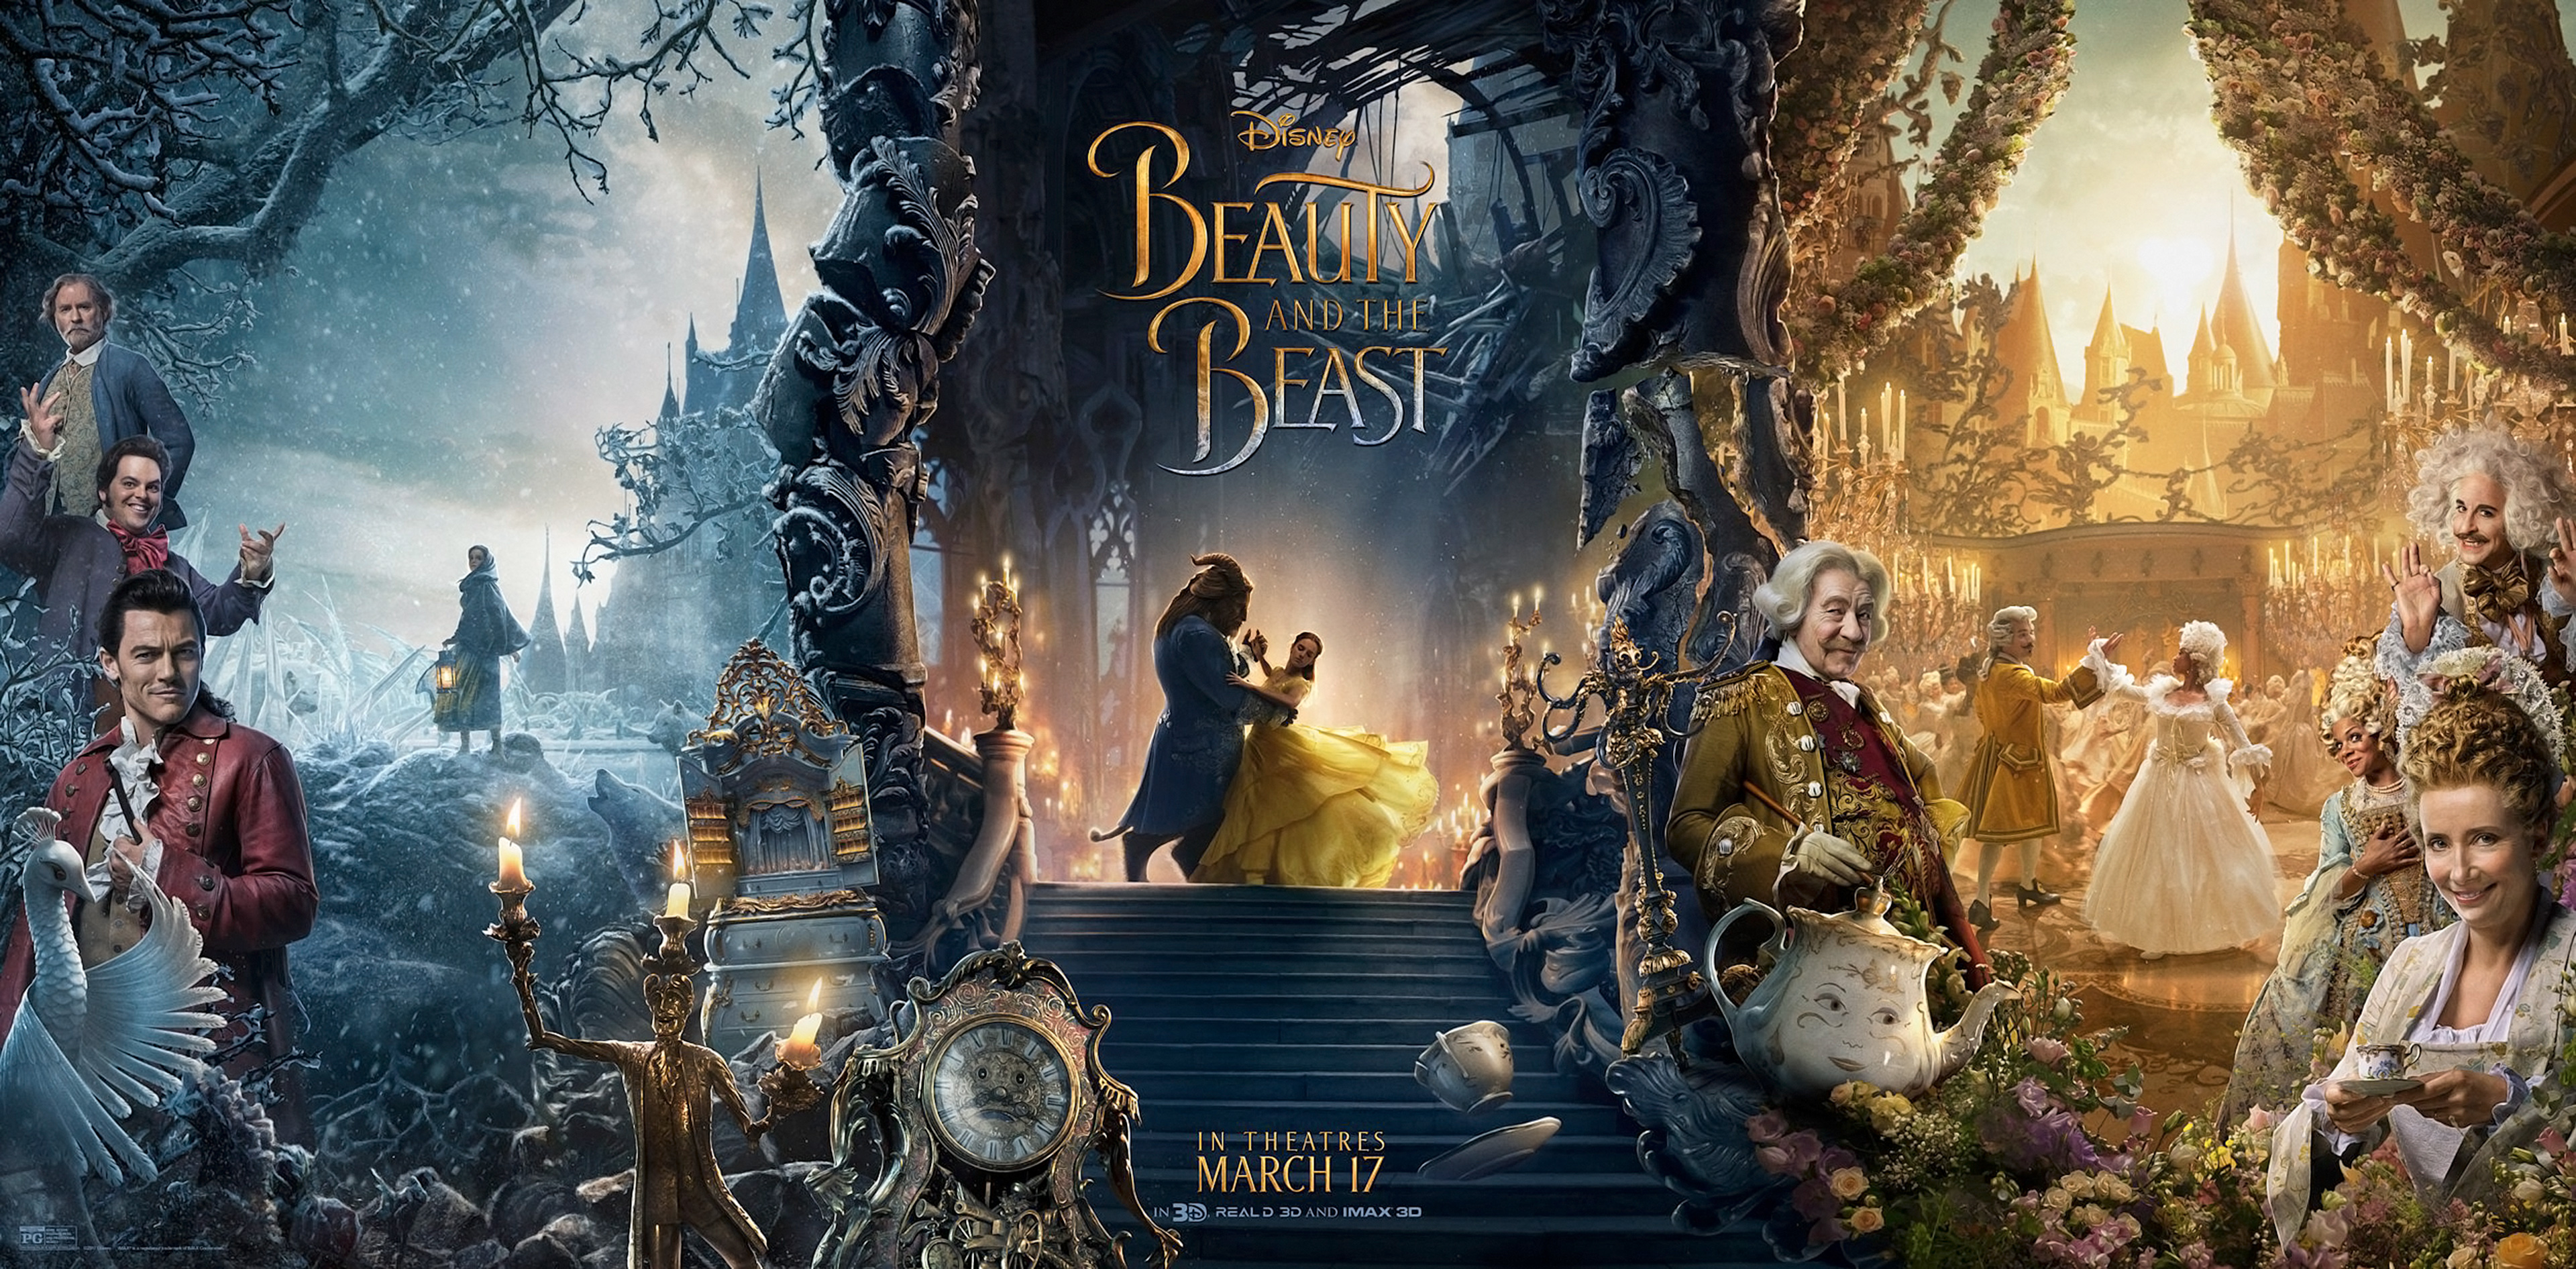 Beauty and the Beast Wallpaper - Wallpapers Browse